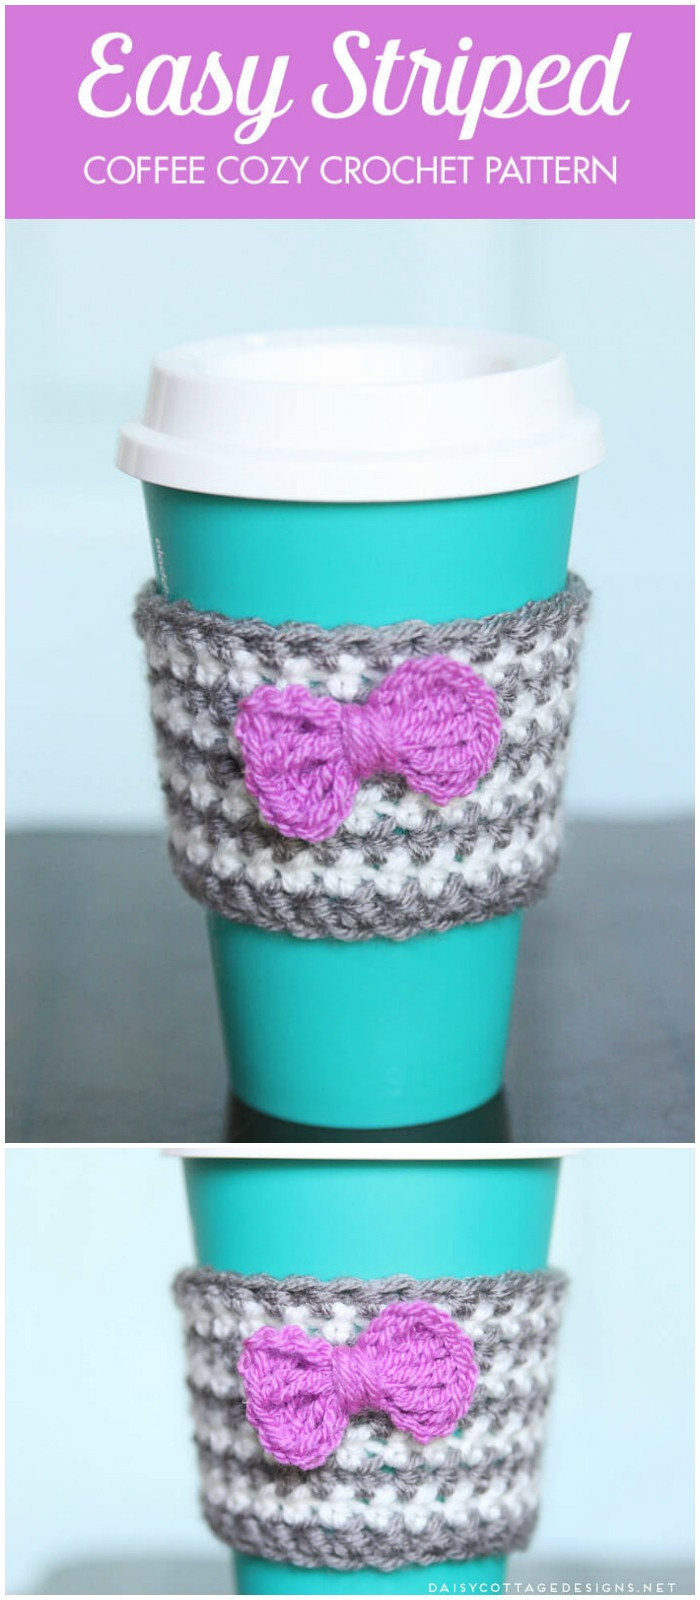 Crochet Coffee Cup Cozy Fresh 8 Crochet Cozy Patterns Free Crochet Patterns • Diy Home Of Crochet Coffee Cup Cozy Luxury Happy Holidays Handmade Gift Idea Crochet Heart Coffee